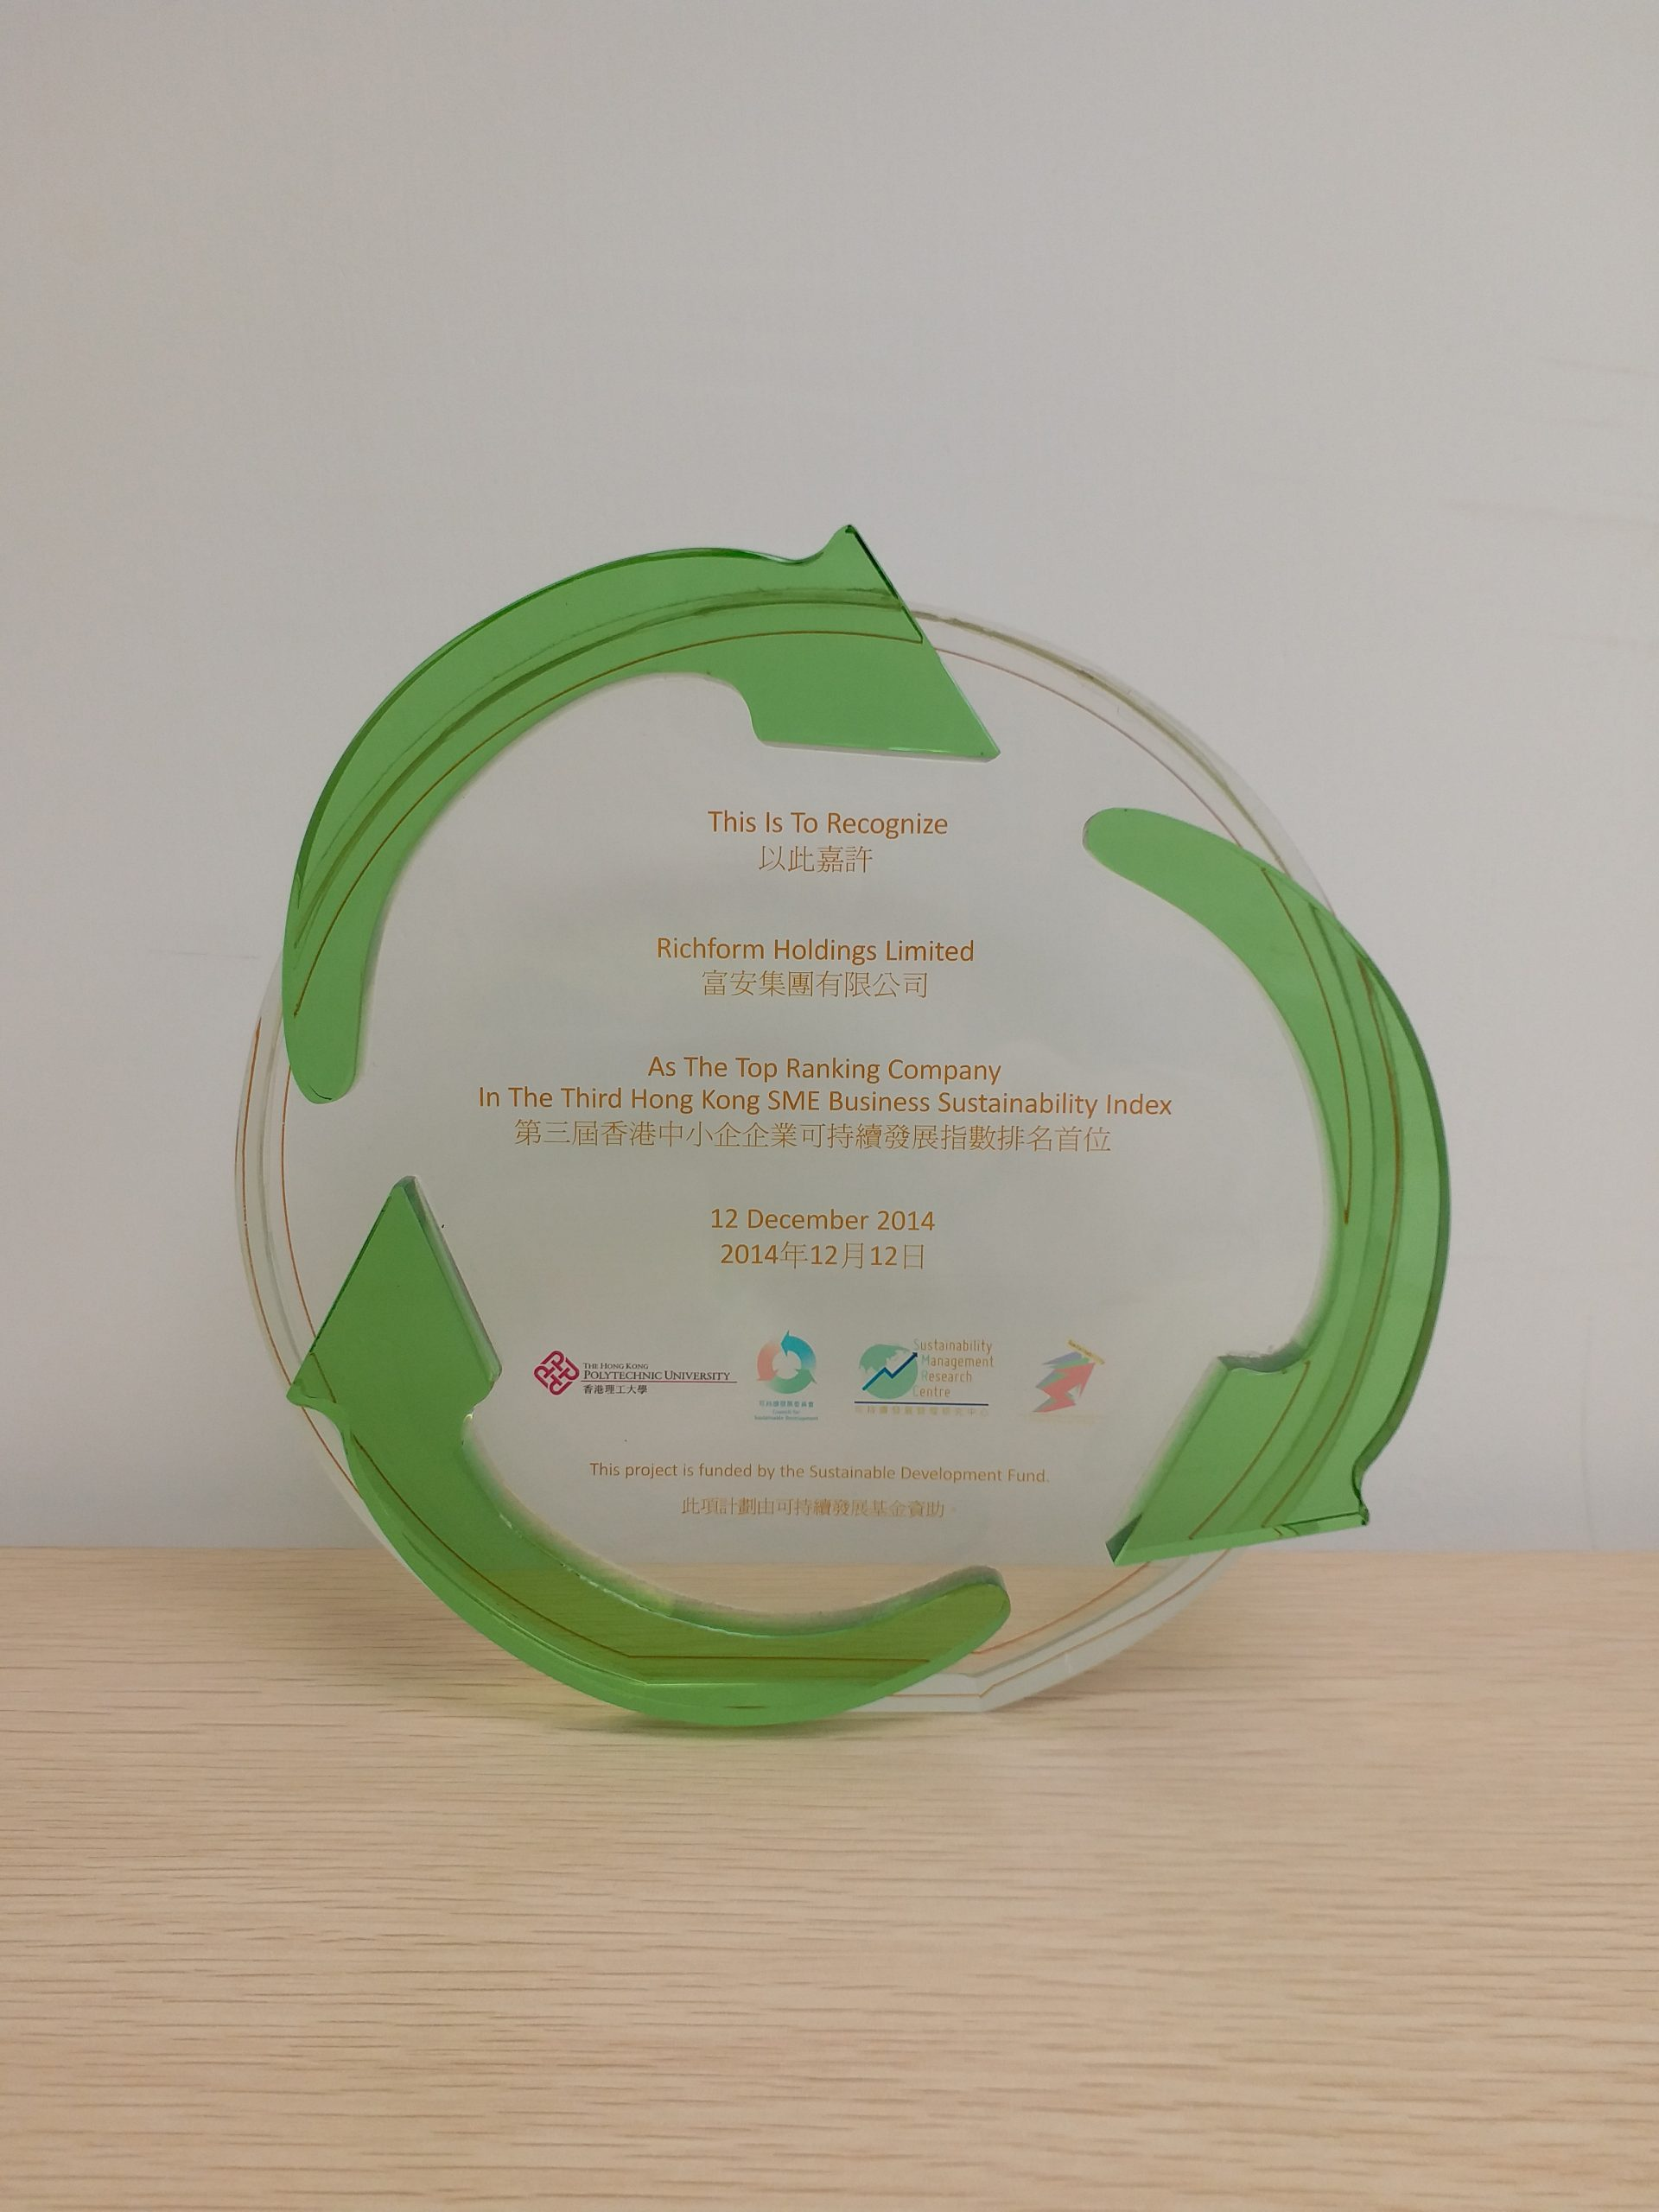 Hong Kong SME Business Sustainability Index 2014 Top Ranking Company